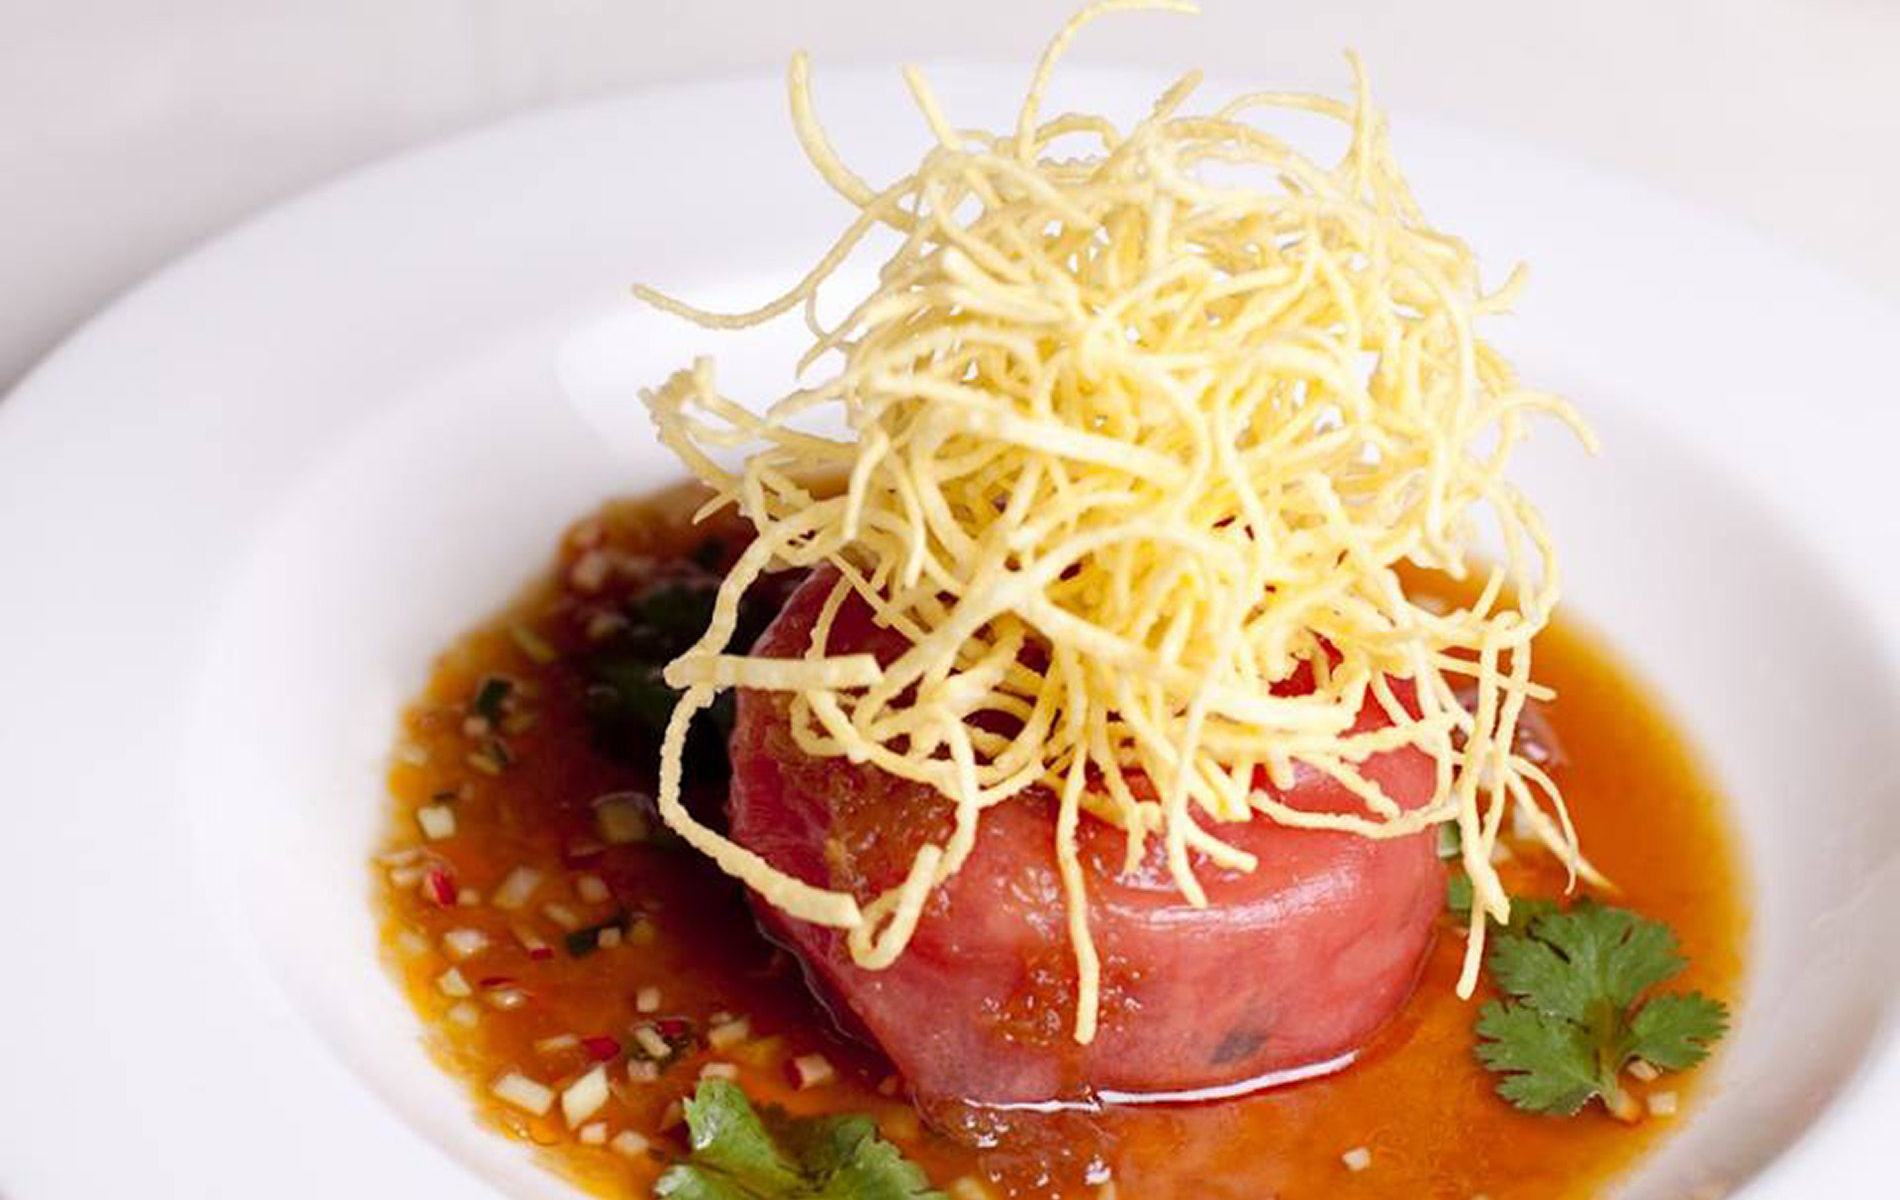 tuna tartare topped with fried onion in soy sauce